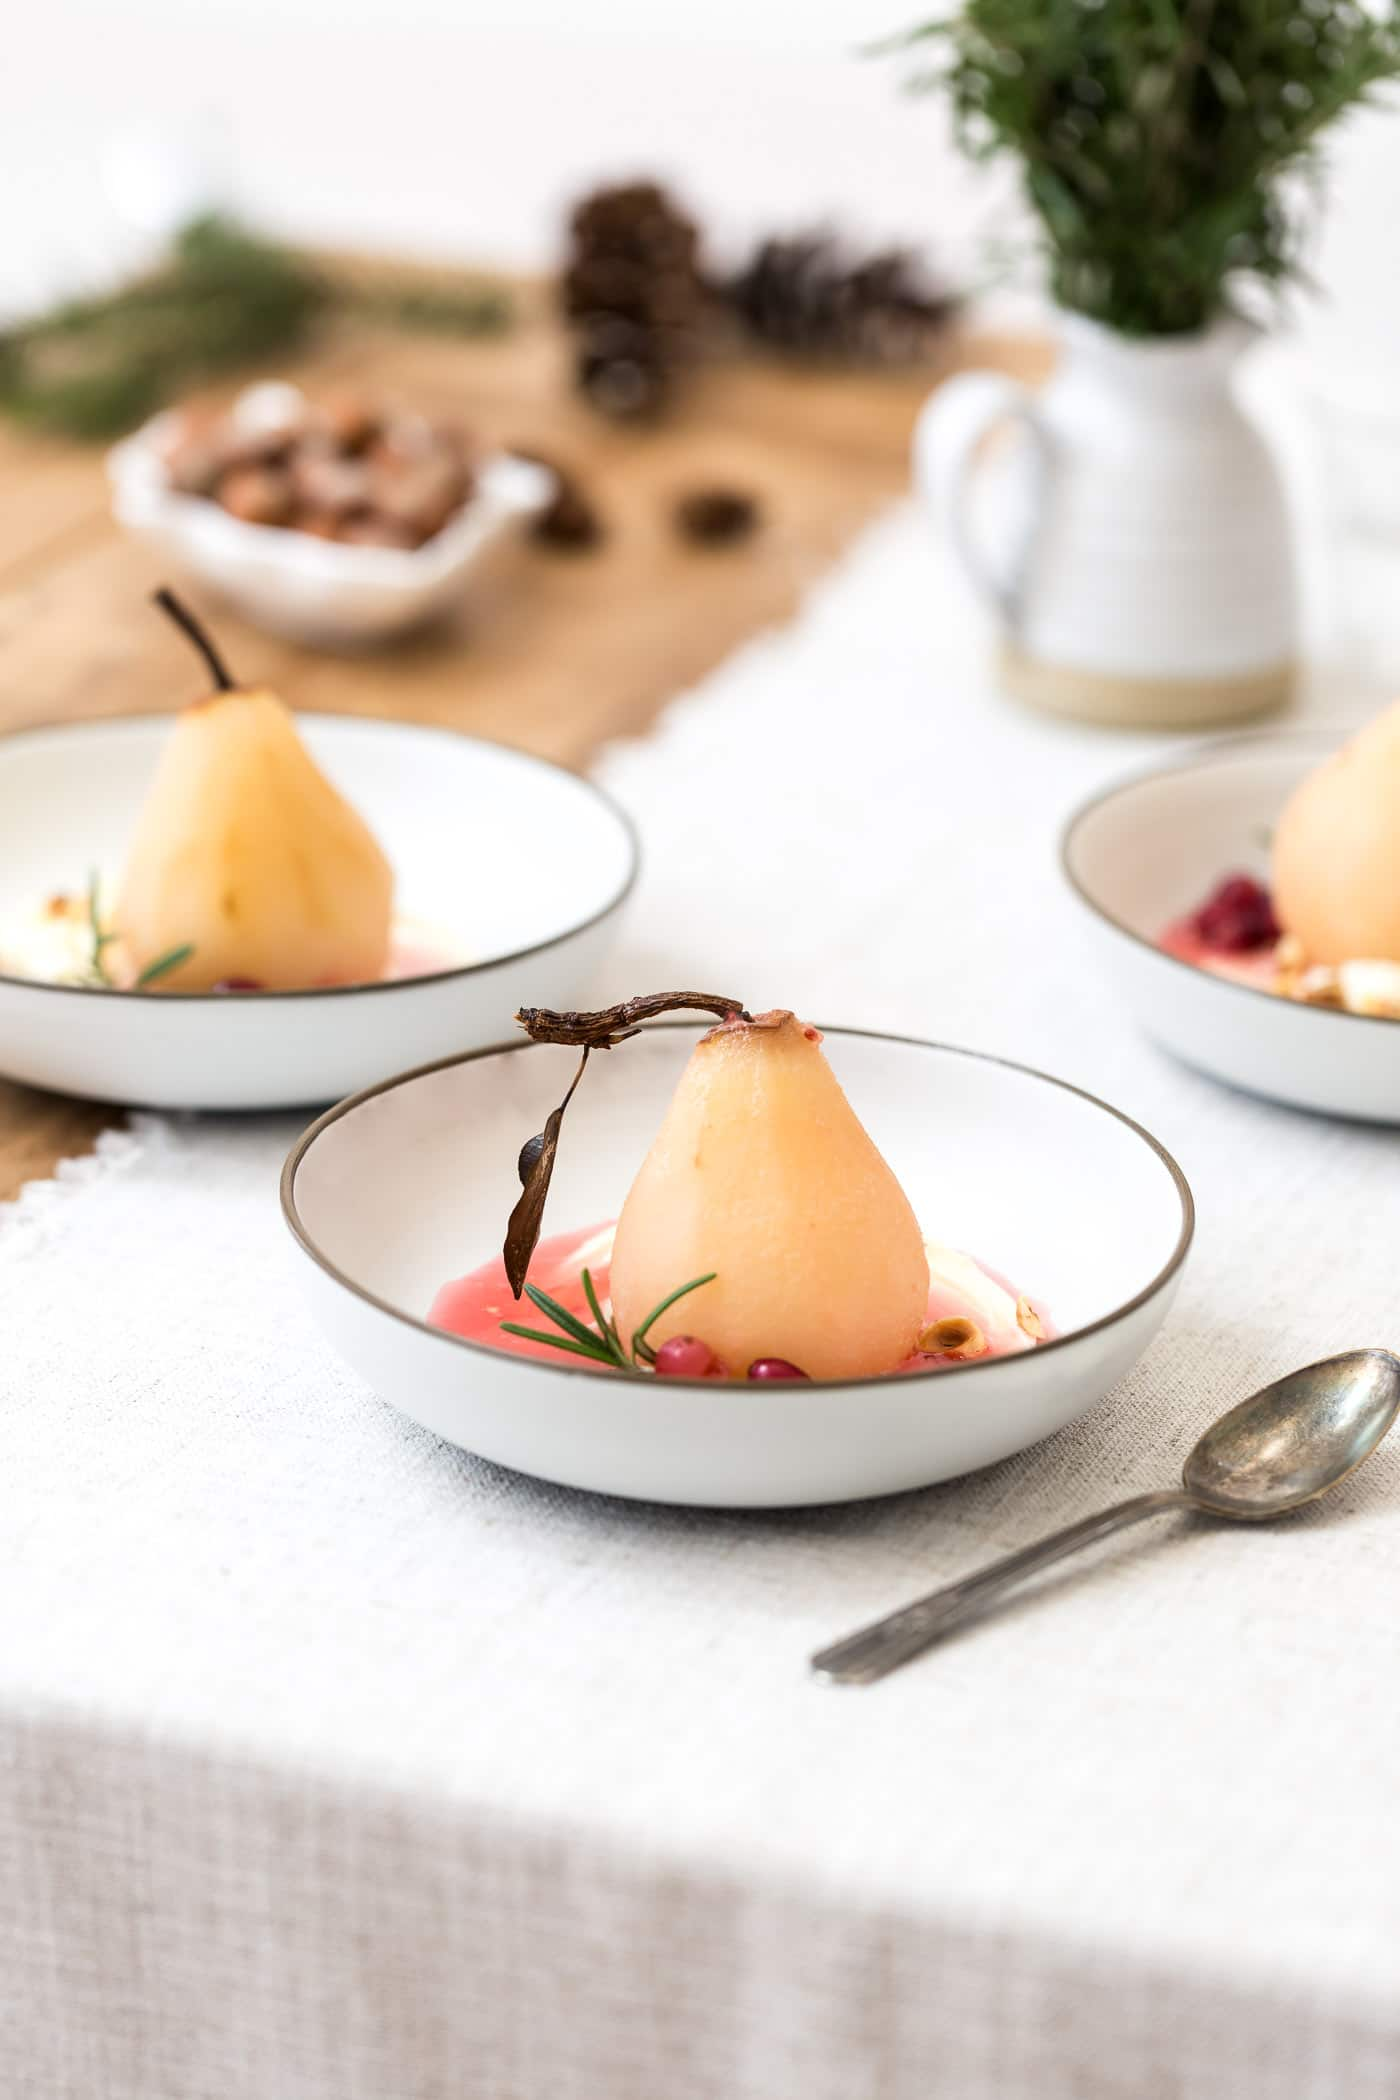 Cranberry Poached Pears are served at a table setting.